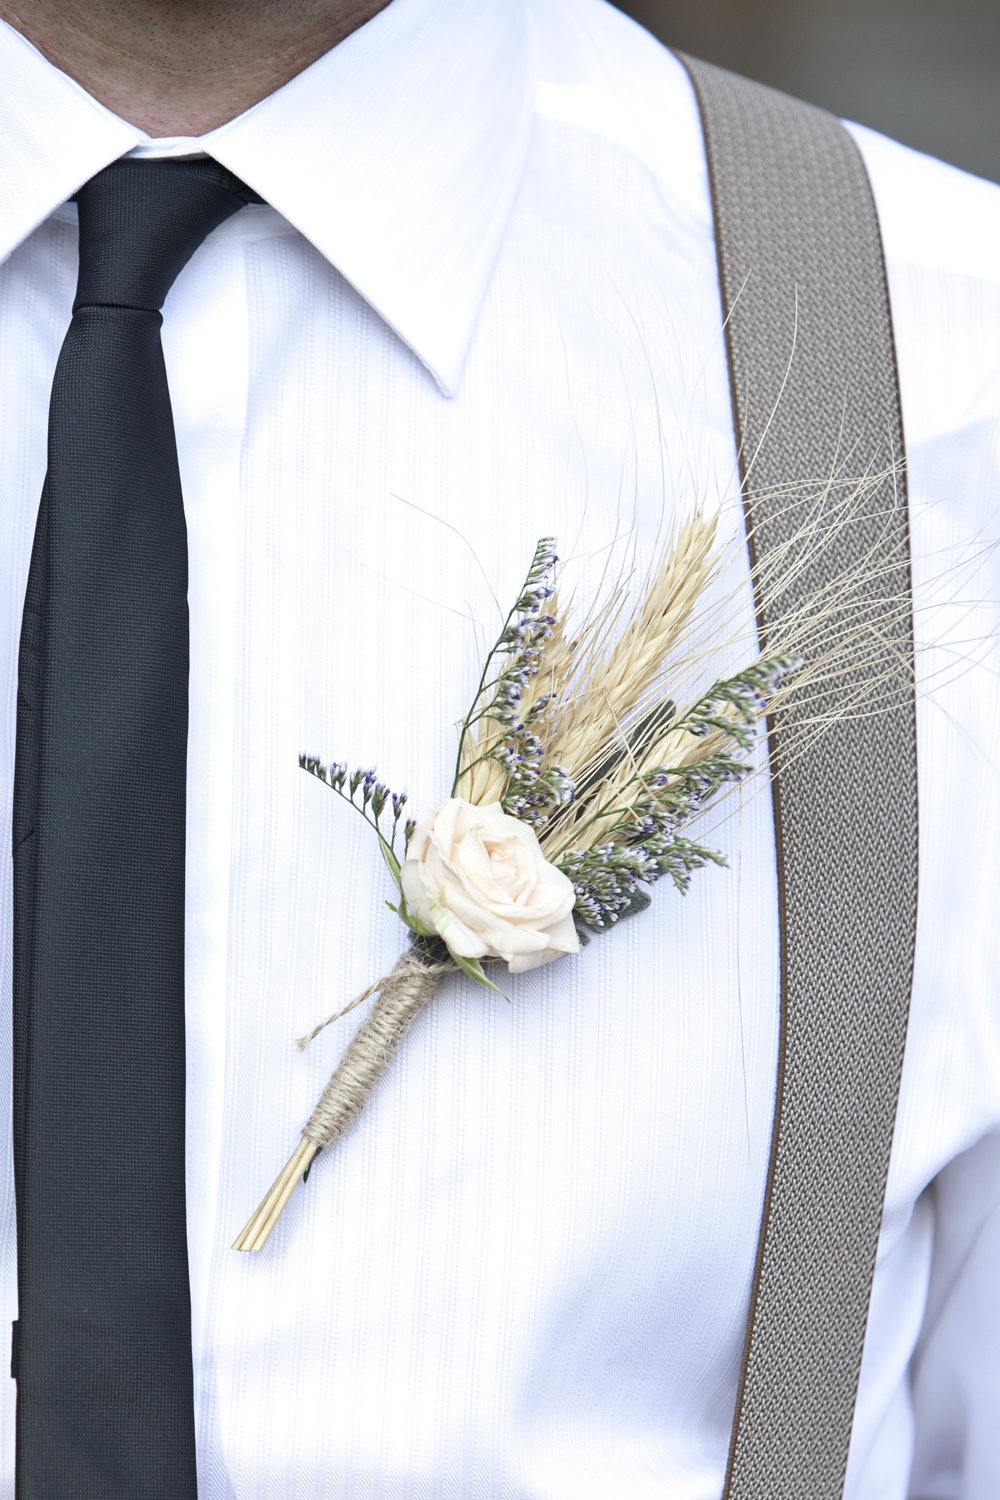 Unique boutonniere with wheat